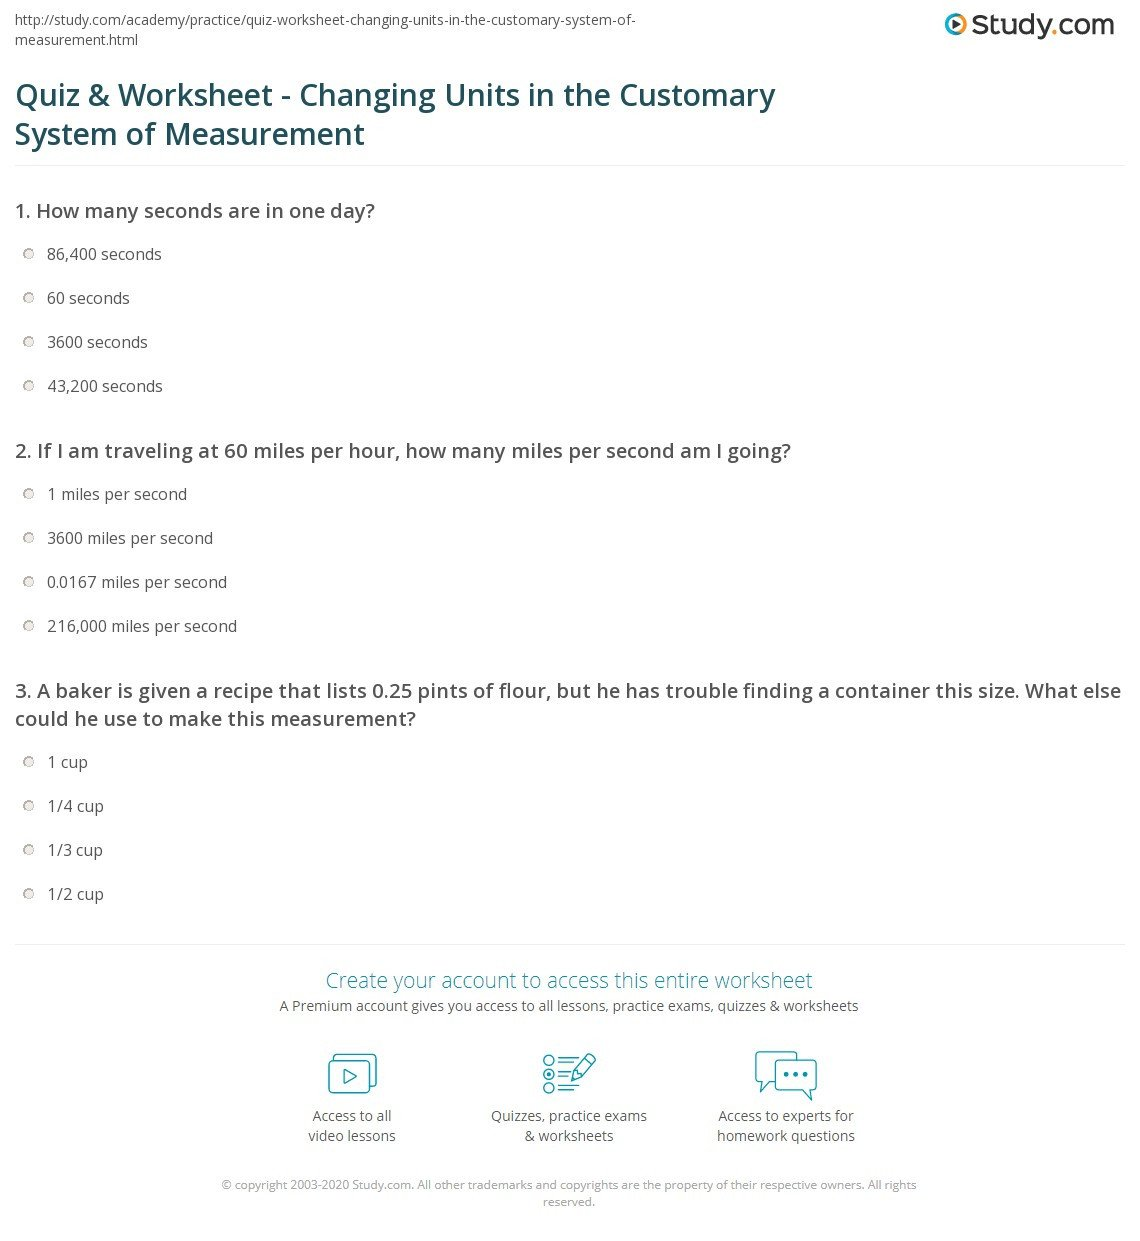 Customary Unit Conversion Worksheet Quiz & Worksheet Changing Units In the Customary System Of